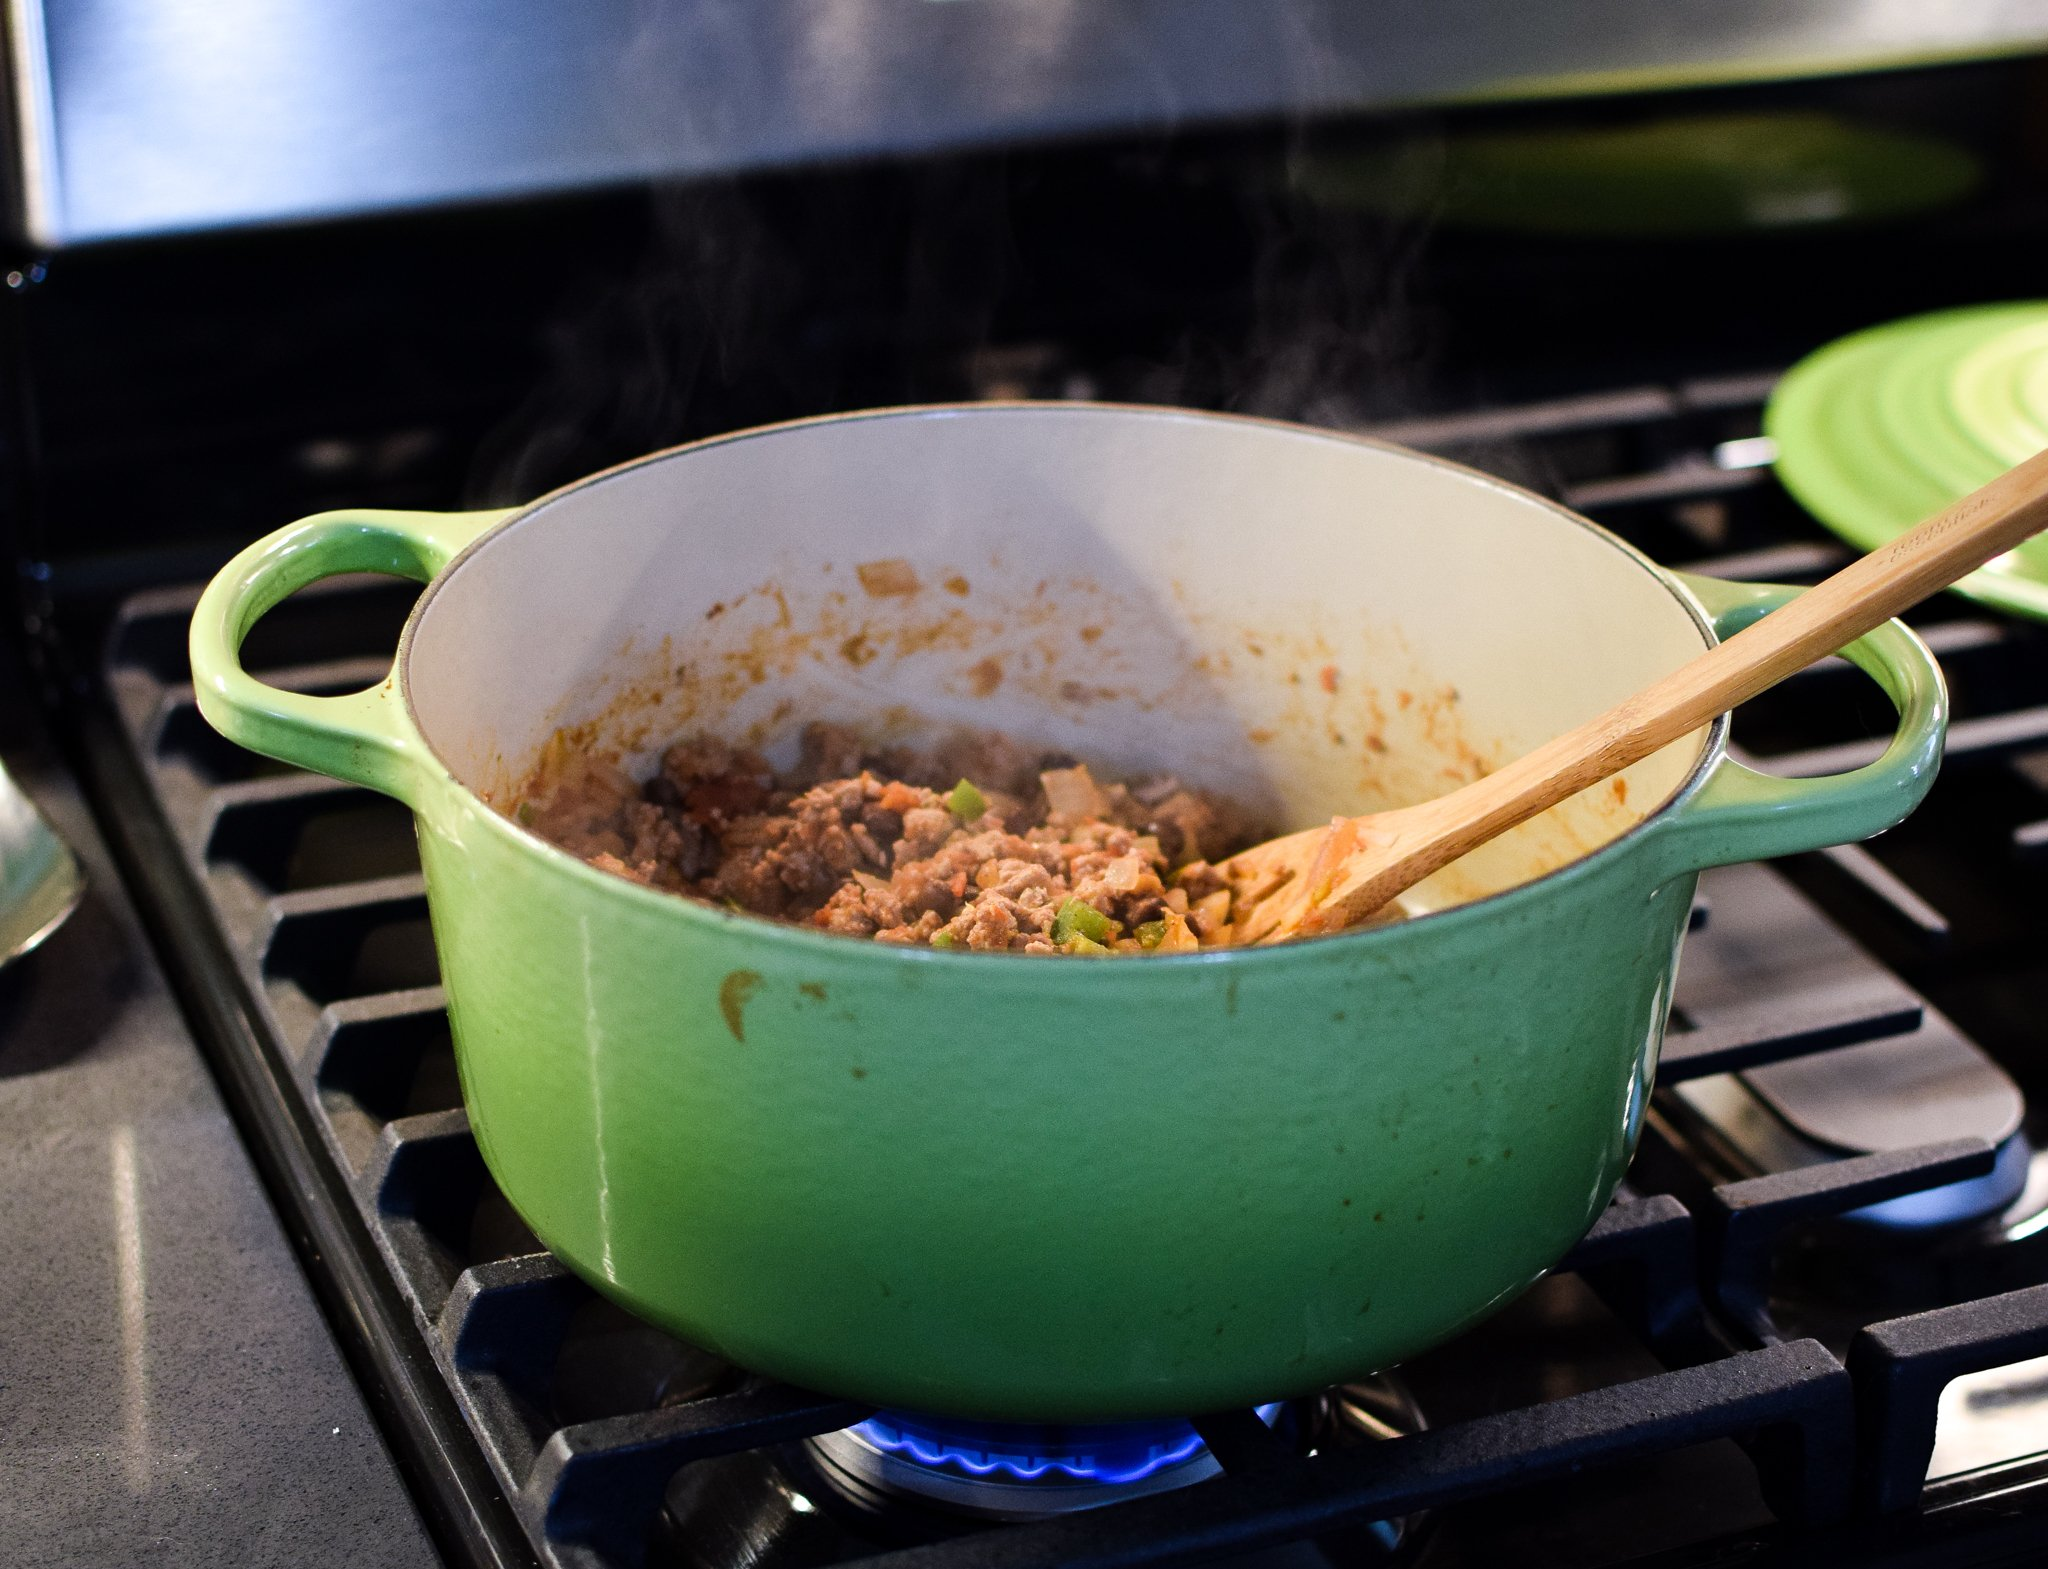 Cooking ground turkey that can be used in multiple meals.